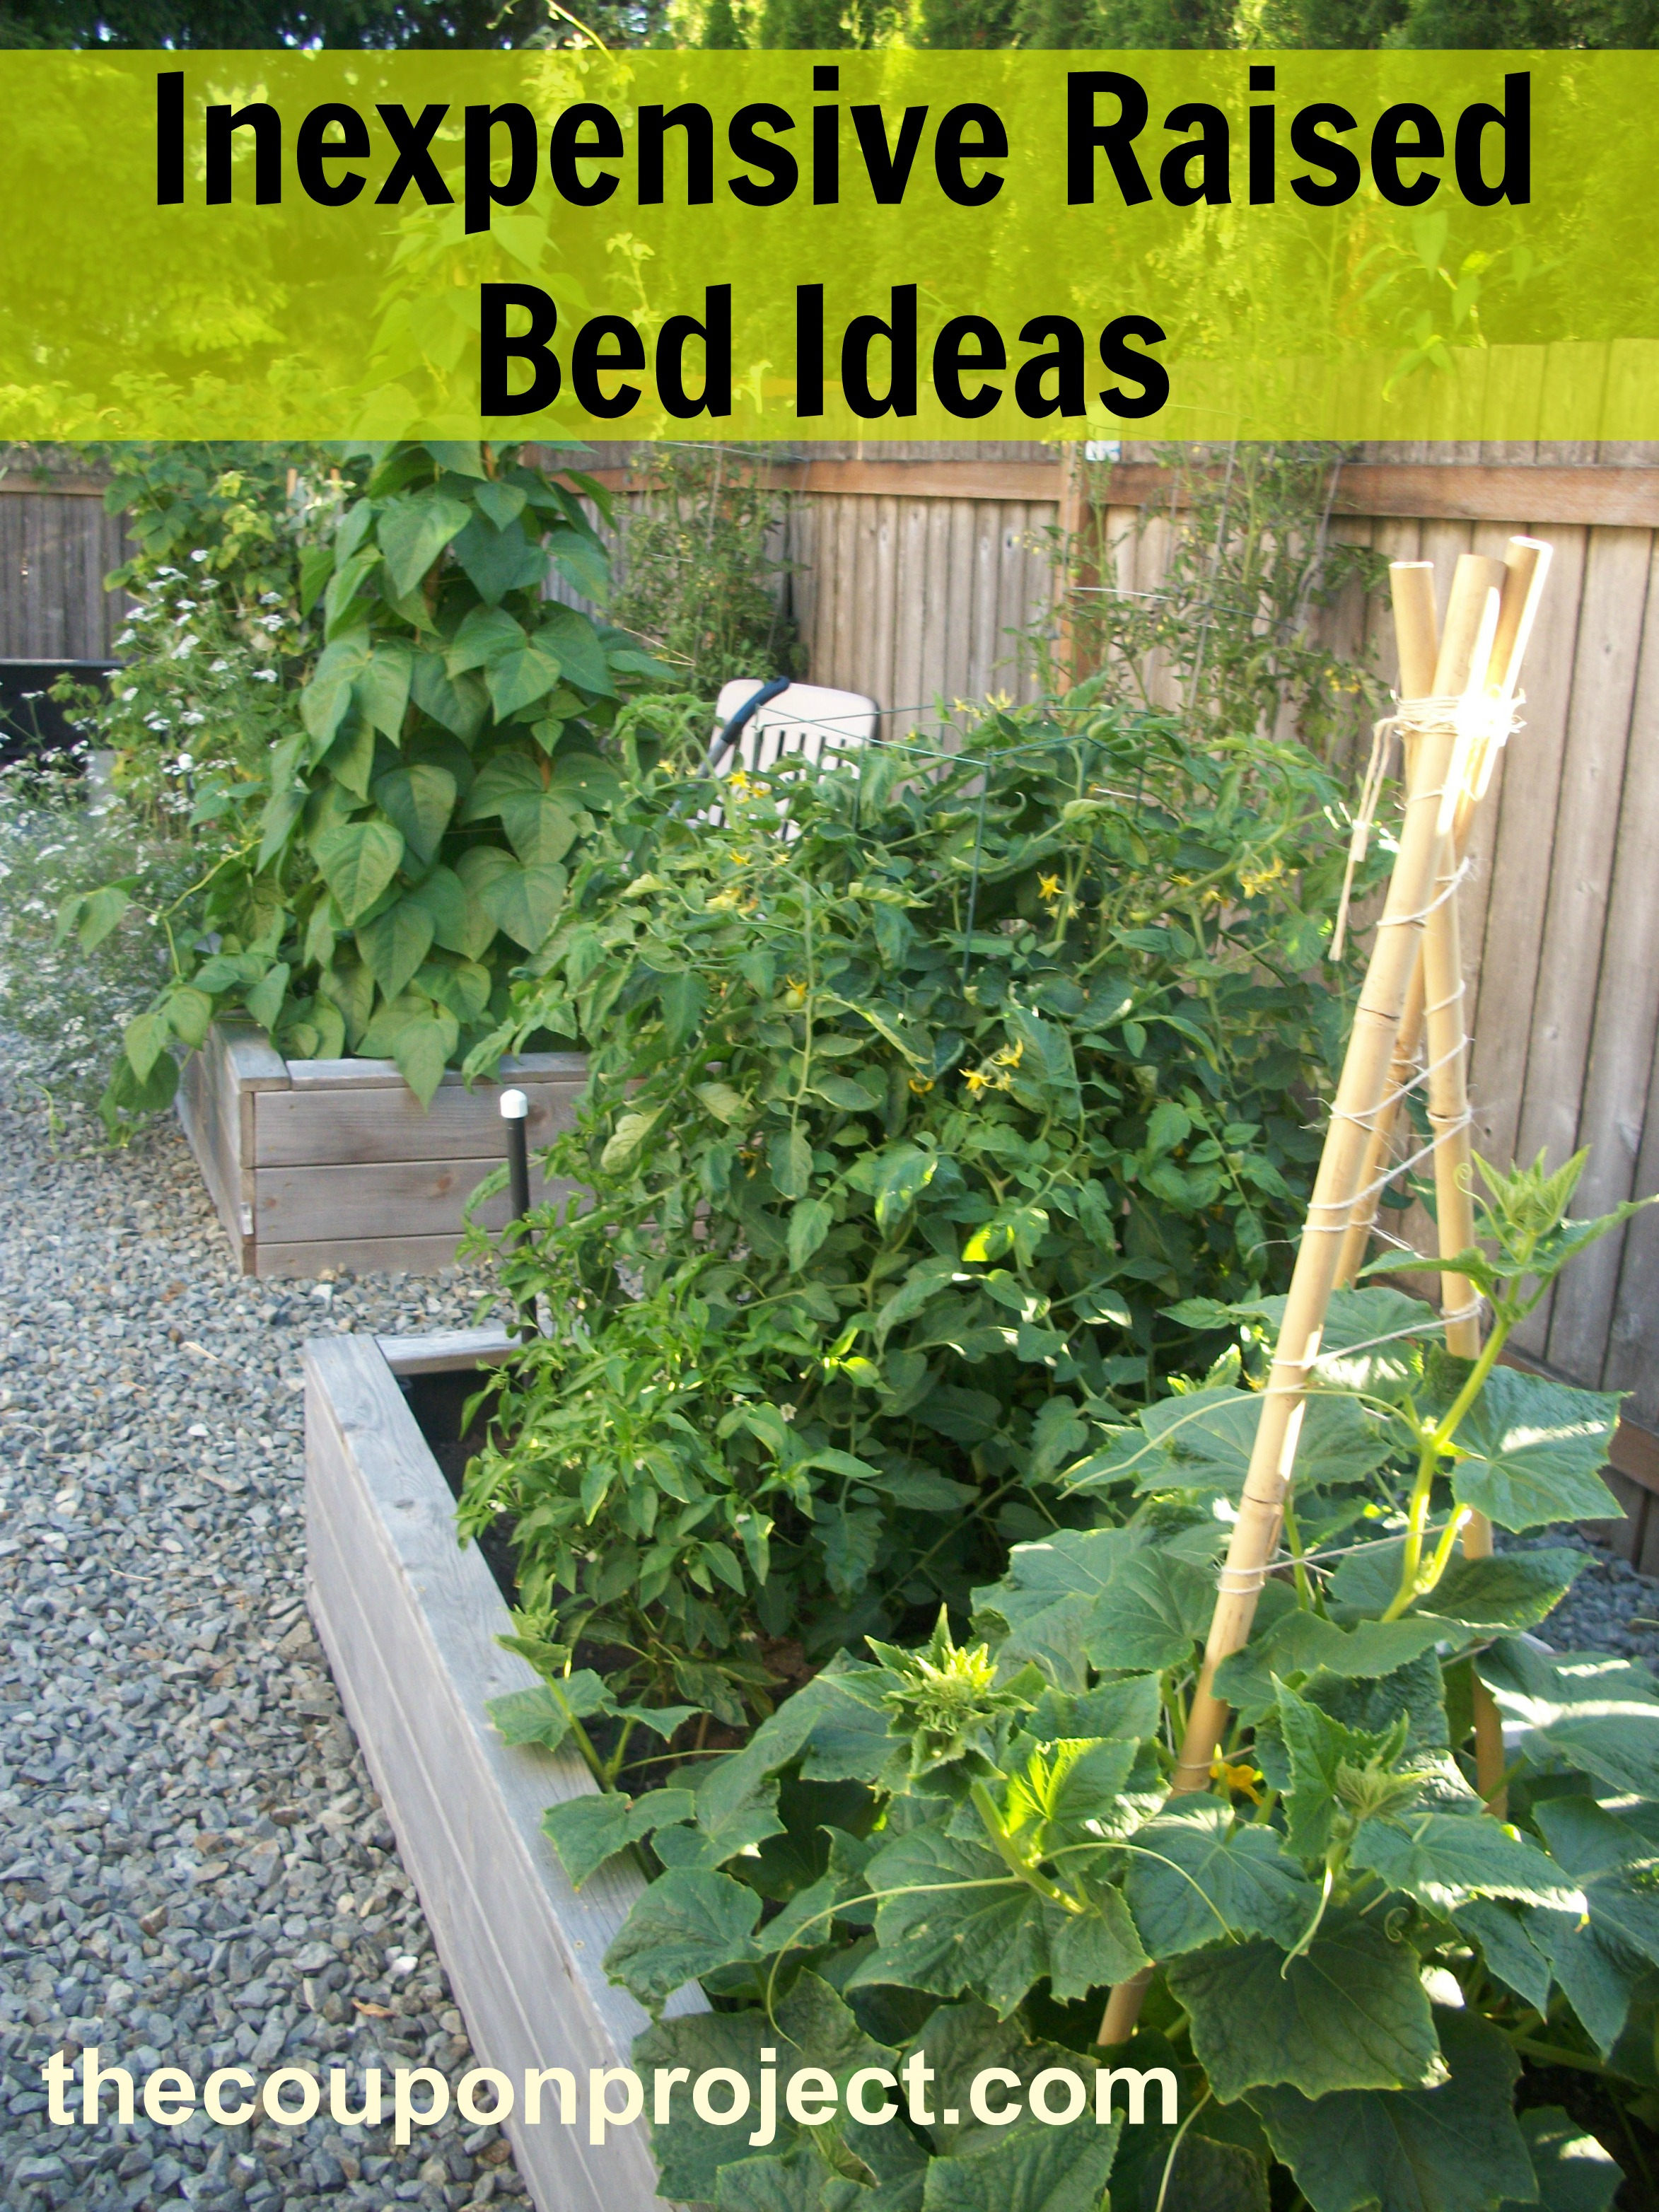 Ideas For Raised Garden Beds unusual design ideas raised garden plans unique 42 diy raised garden bed plans amp you can How To Make Inexpensive Raised Beds Four Different Ideas